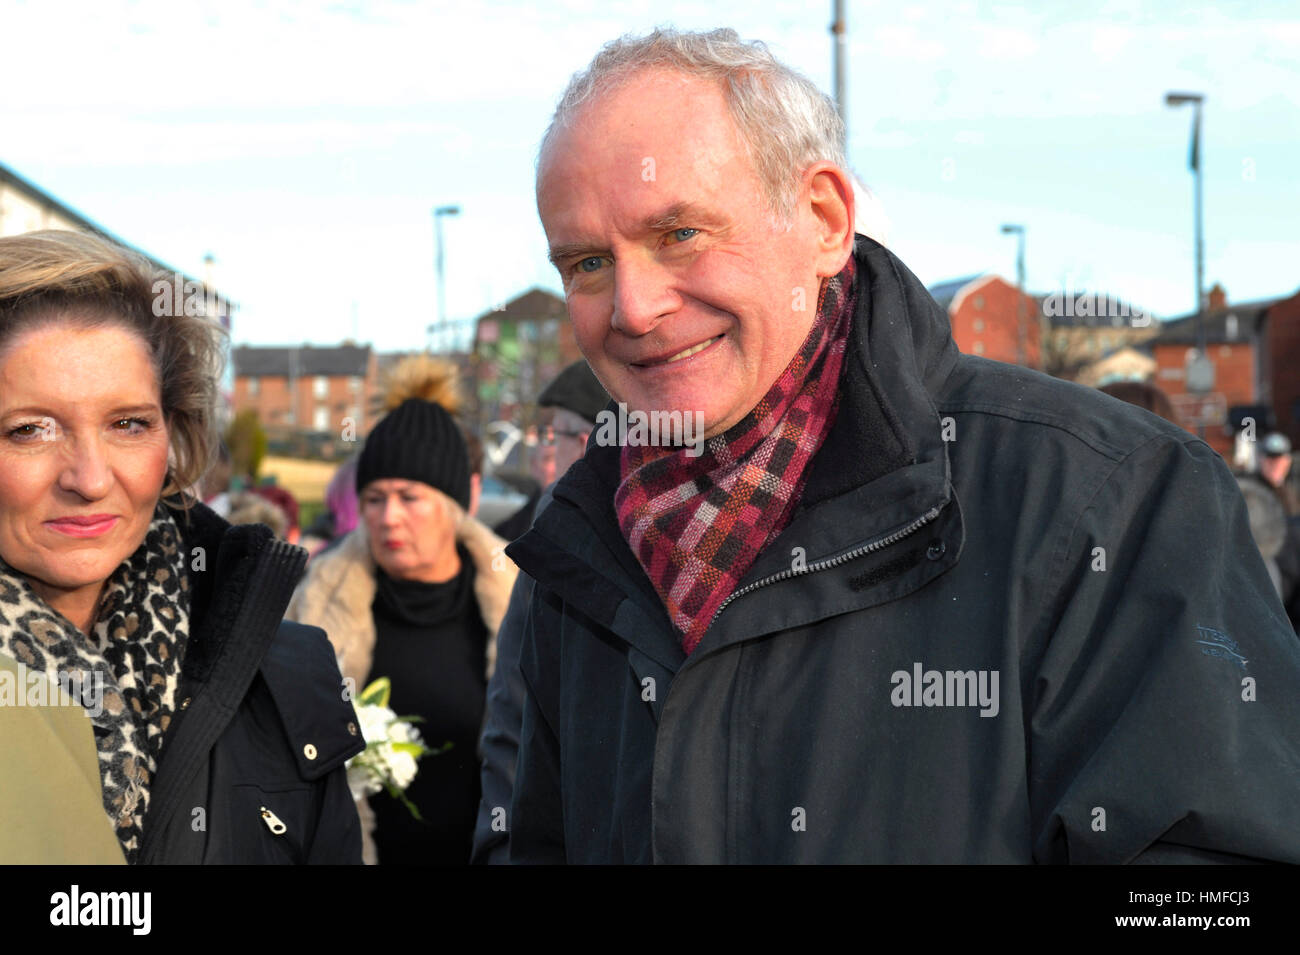 Martin McGuinness, Sinn Fein, at the 45th Bloody Sunday memorial service in Derry, Londonderry. - Stock Image